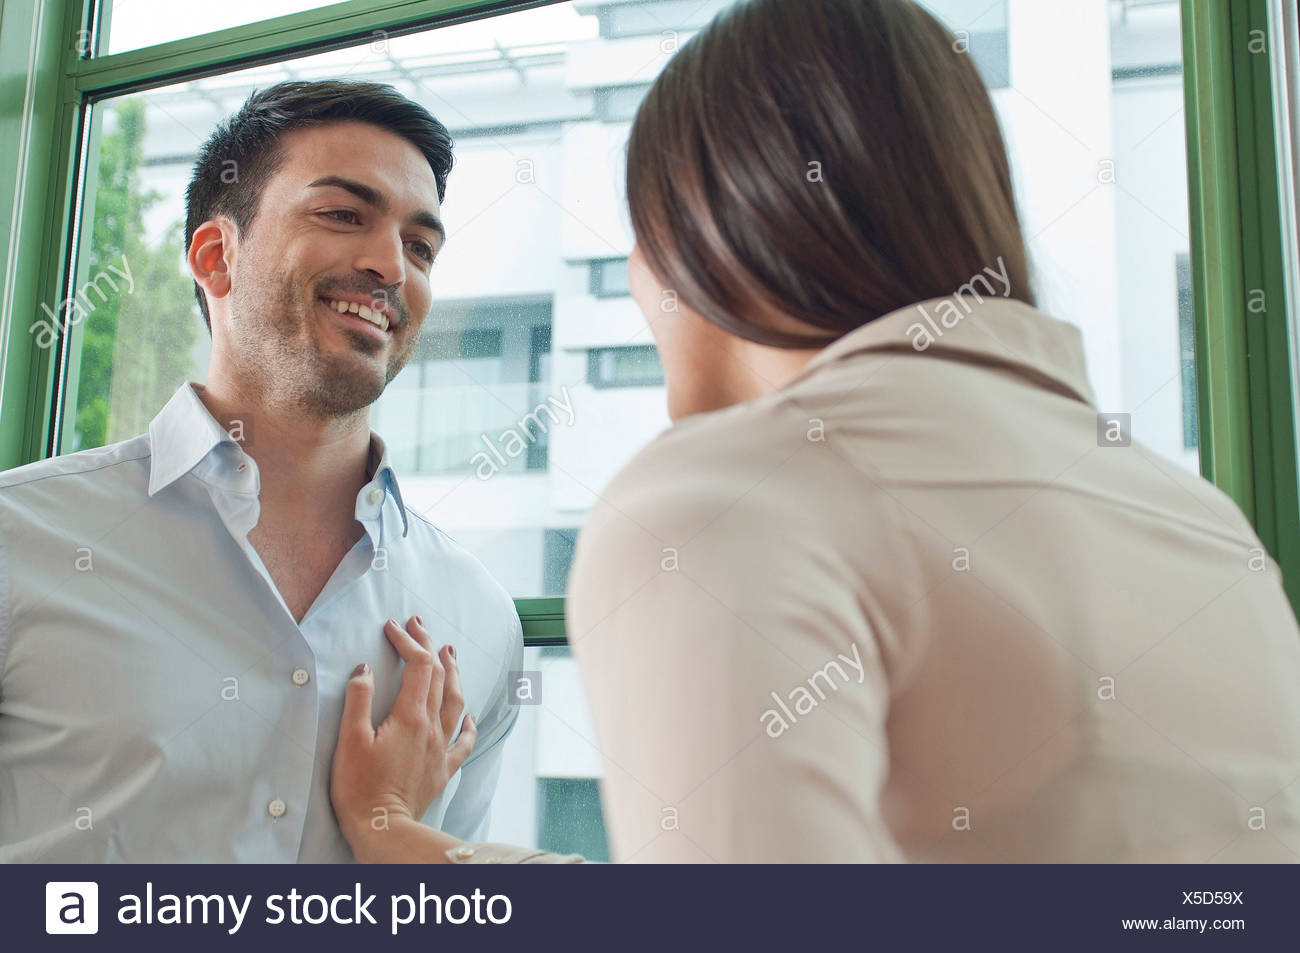 Young colleagues flirting in office - Stock Image